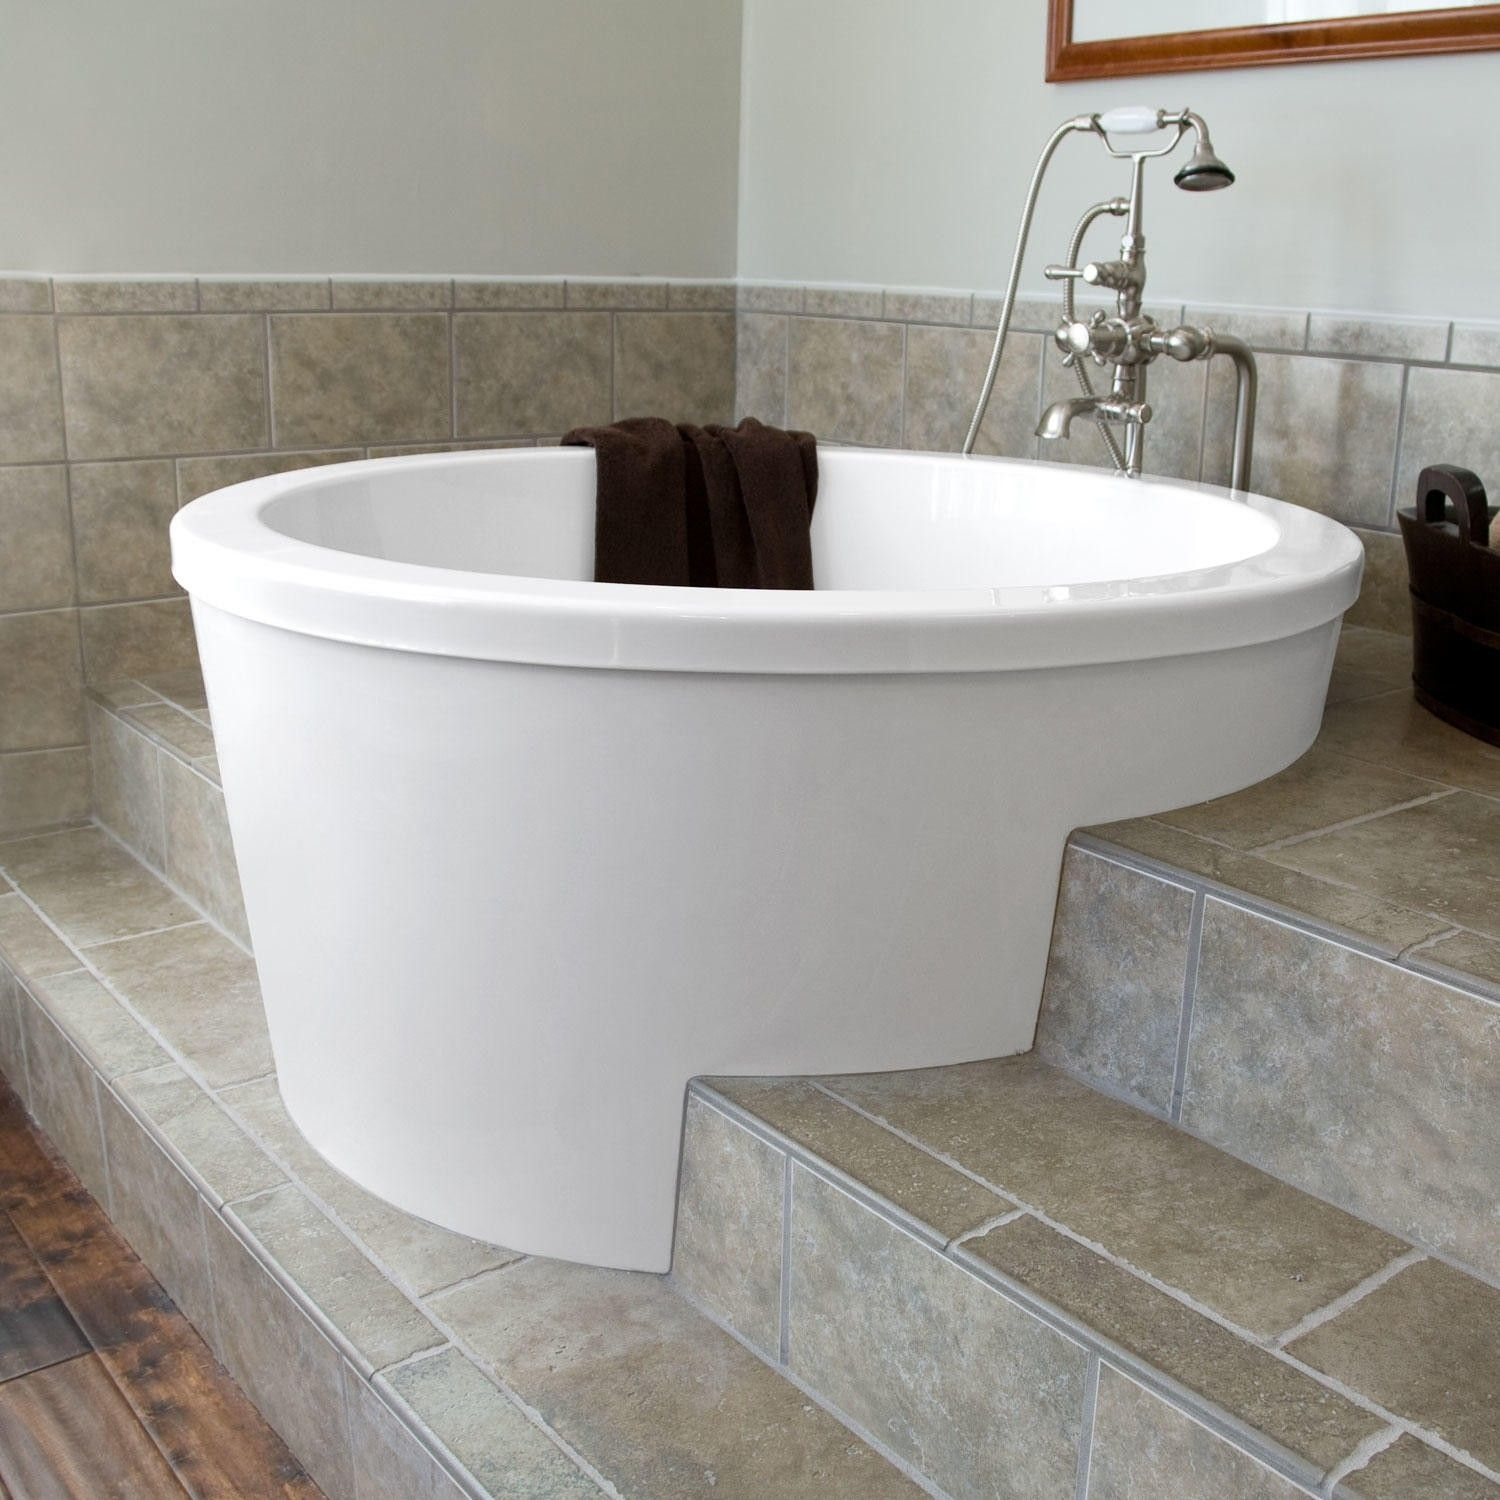 Japanese Soaker Tub With Shower Randolph Indoor And Outdoor Design